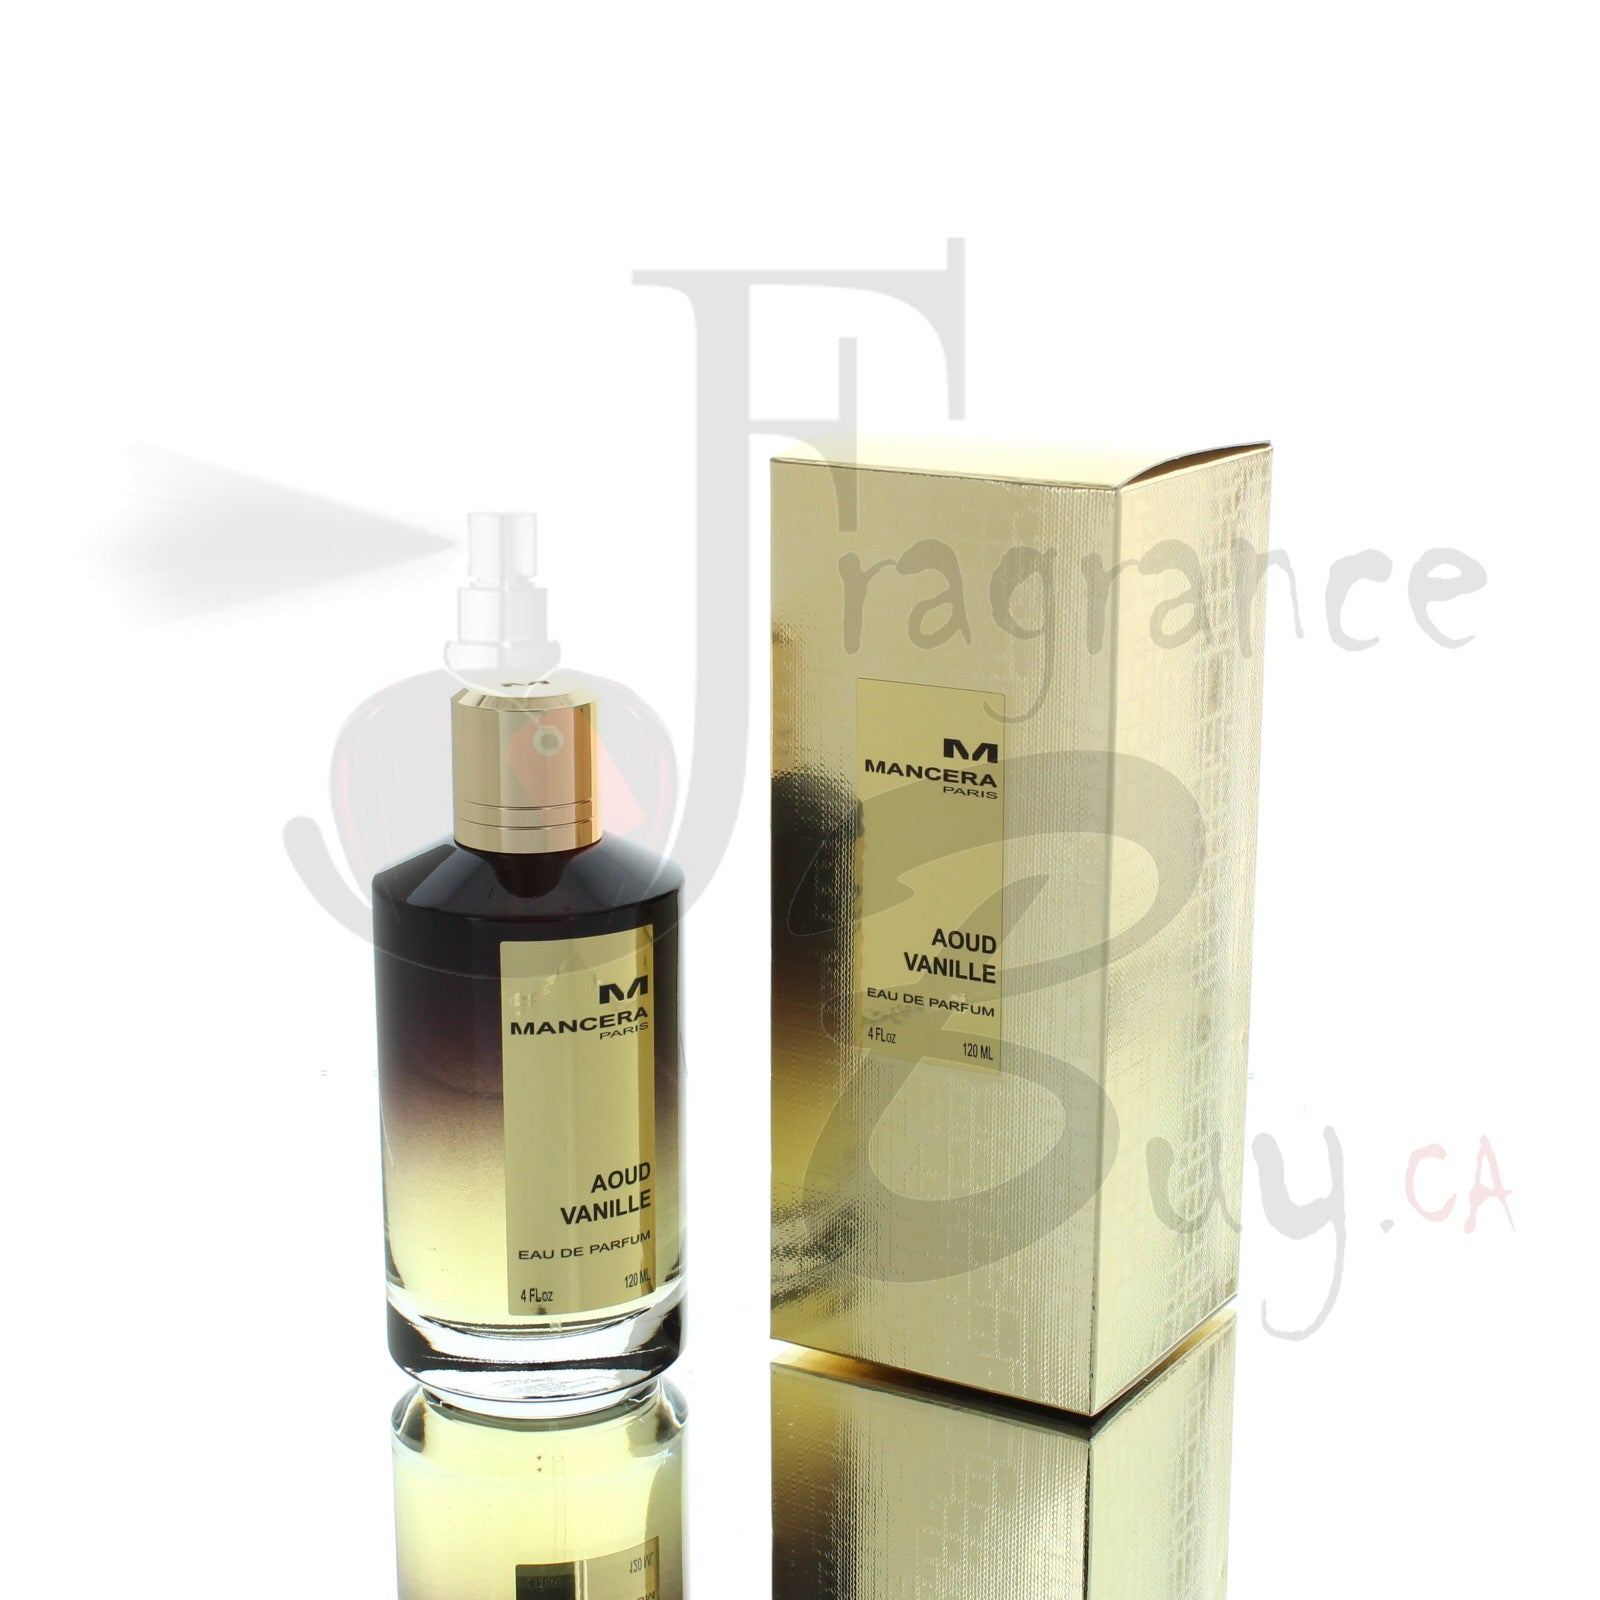 Mancera Aoud Vanille For Man/Woman